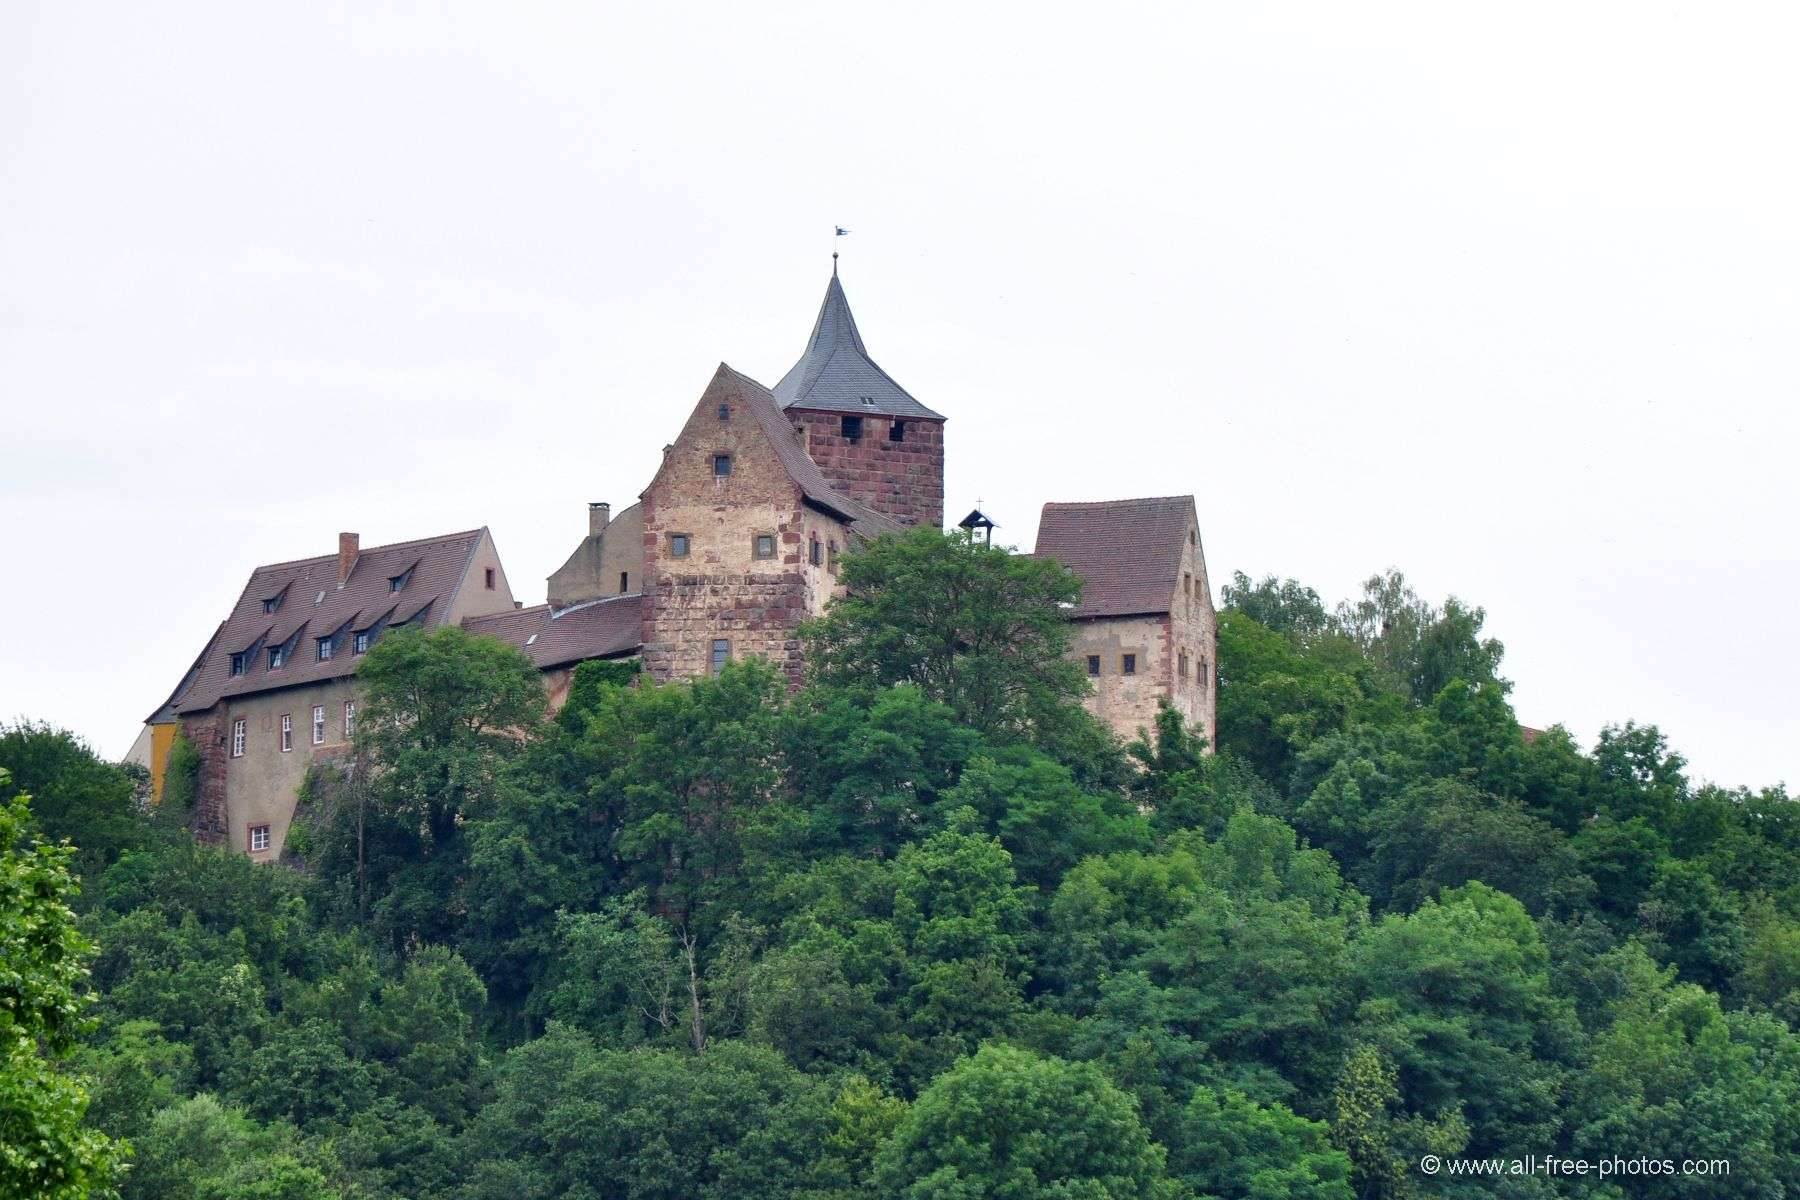 Castle of Rothenfels - Germany